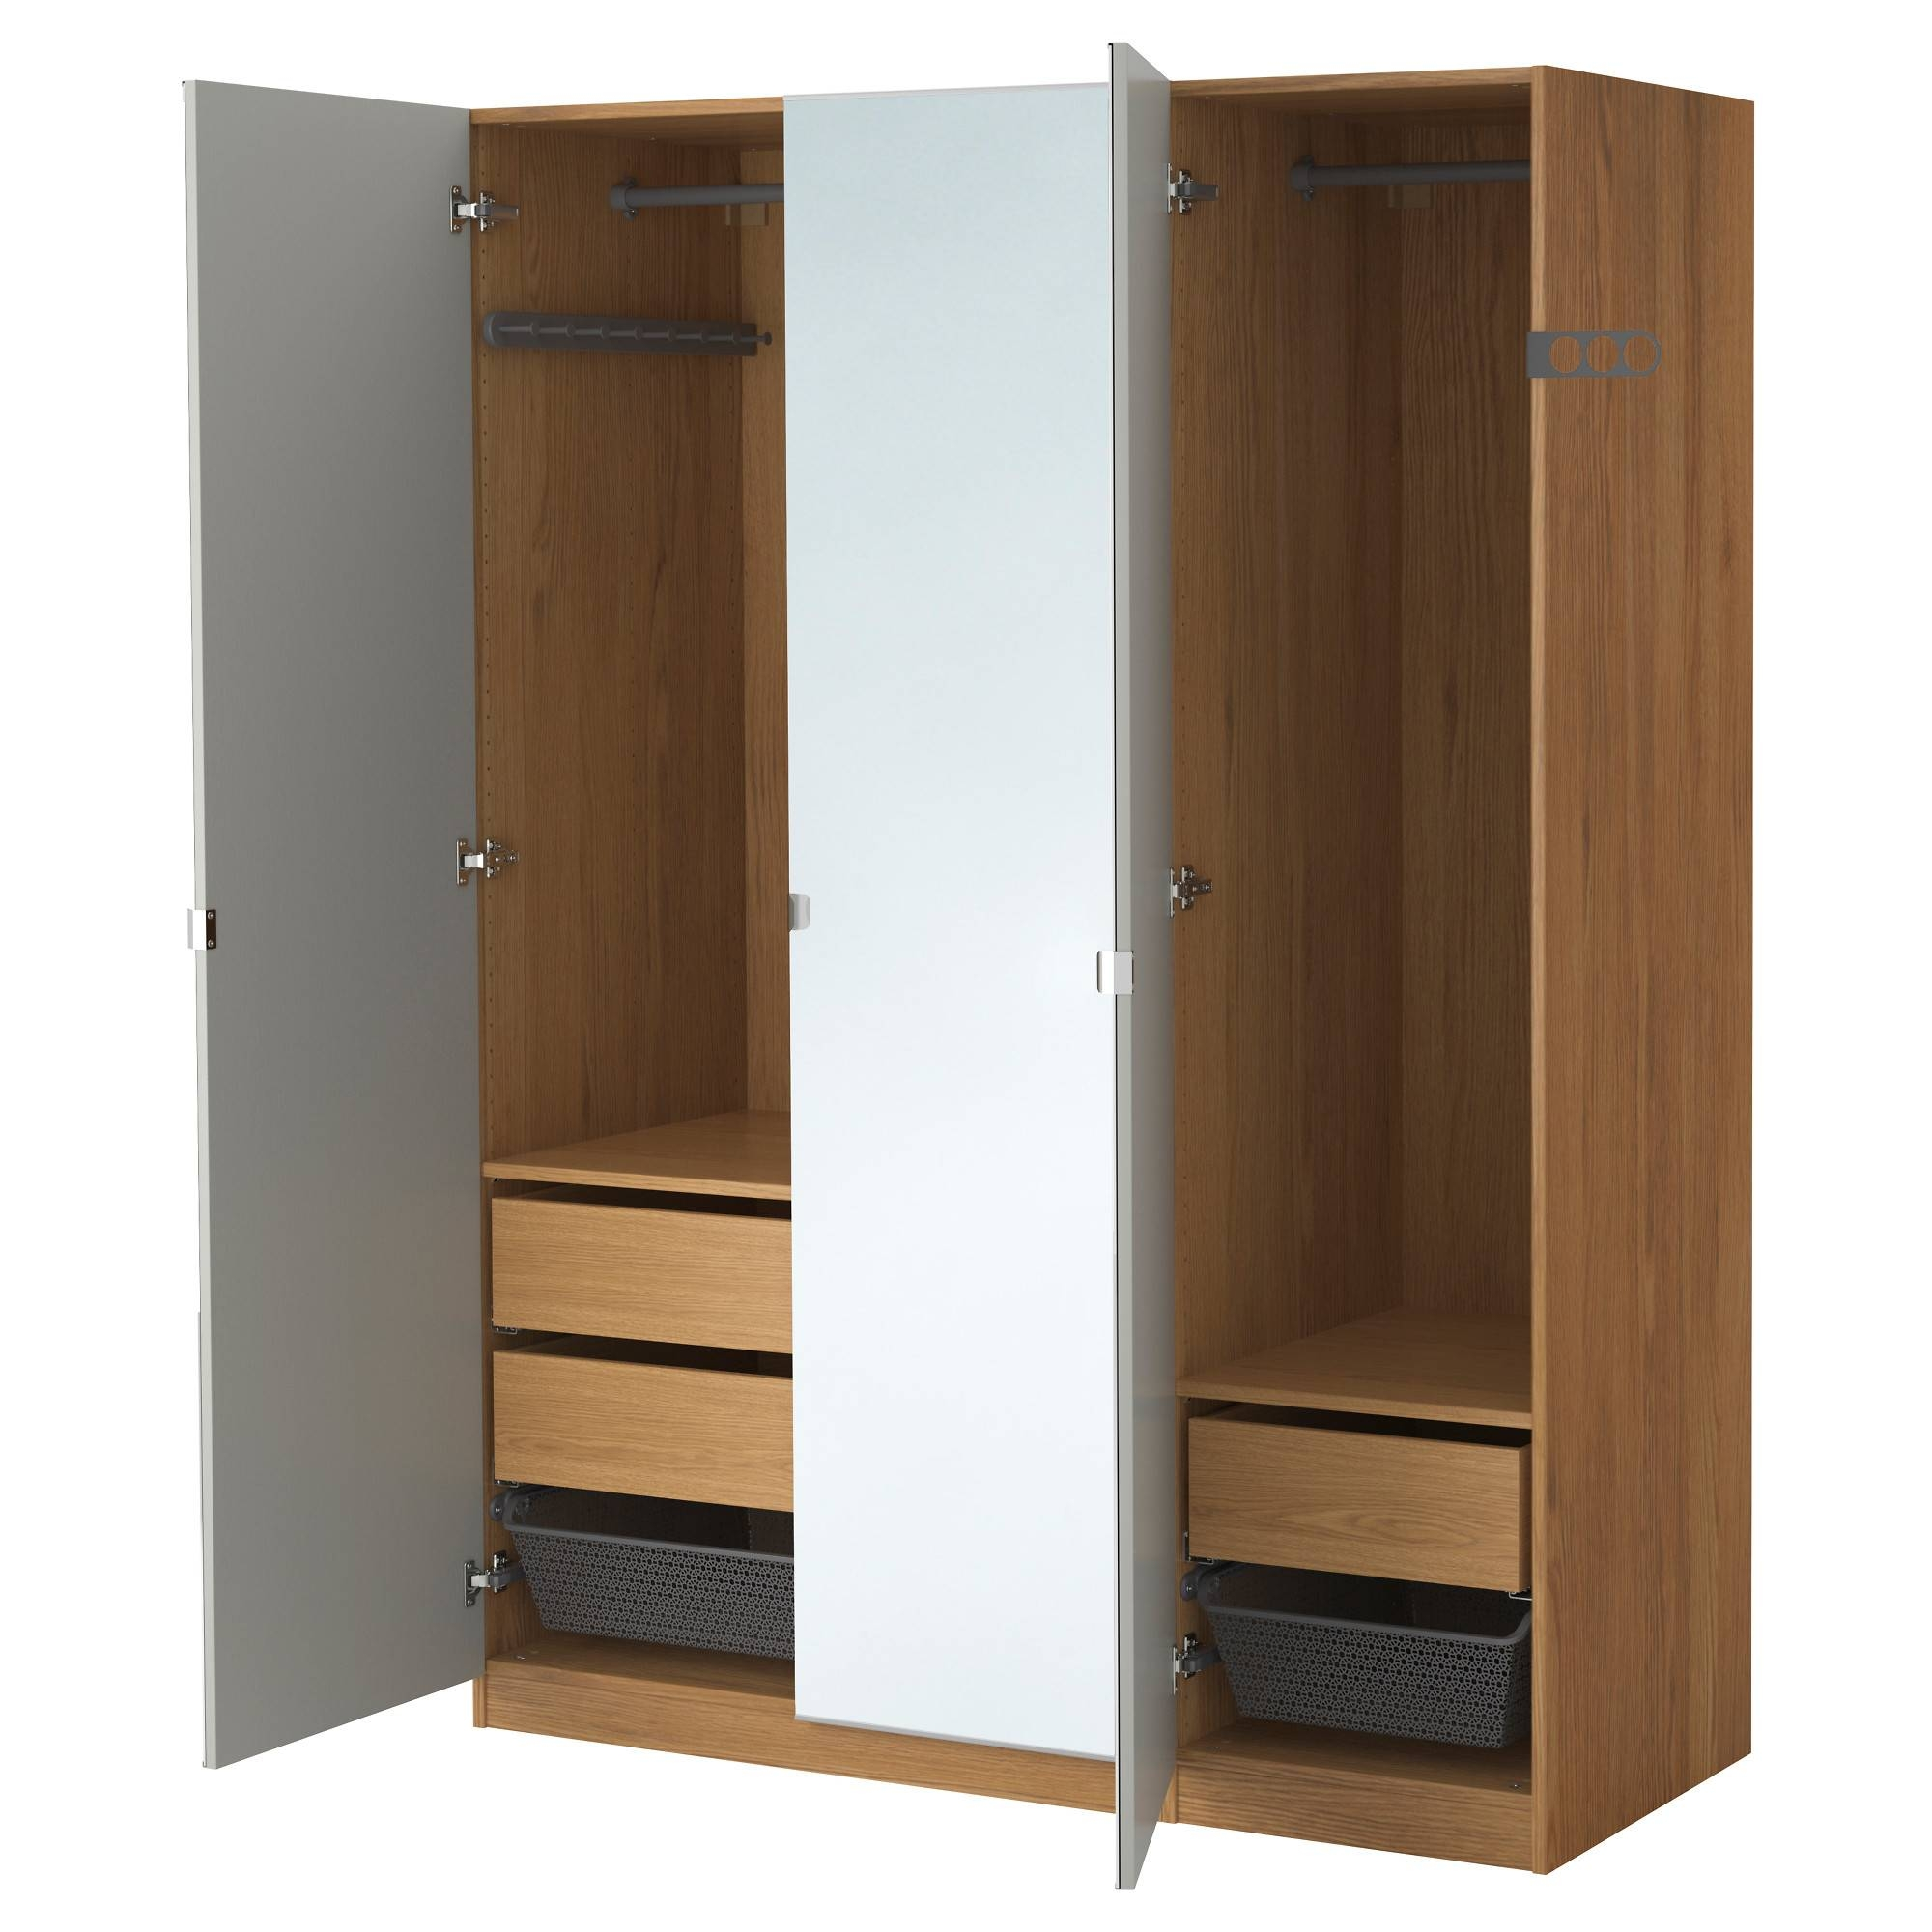 Wardrobes | Ikea Throughout Wardrobes With Mirror And Drawers (View 15 of 15)